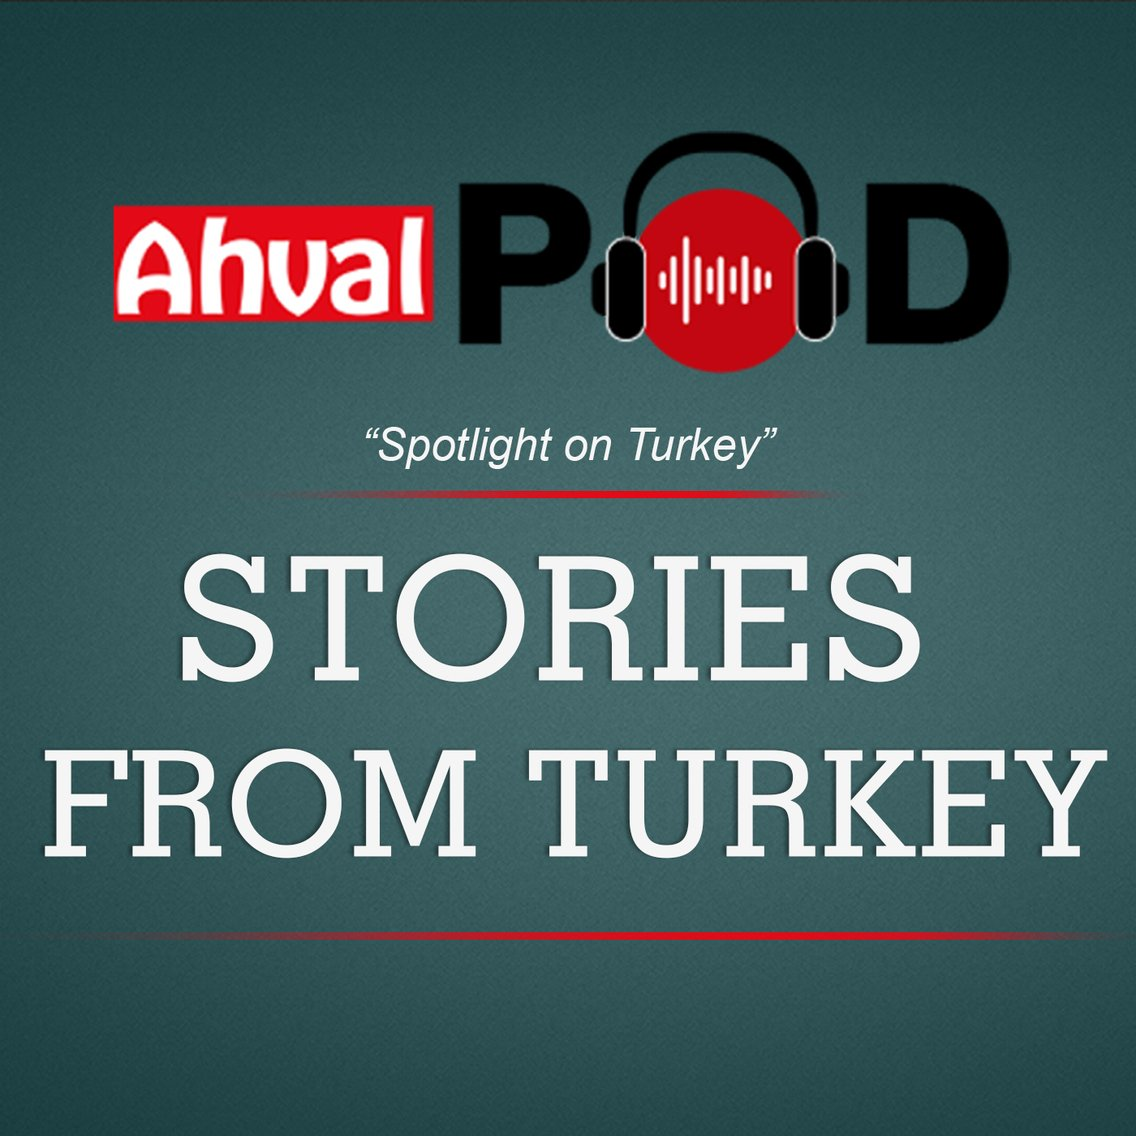 Stories from Turkey - Cover Image